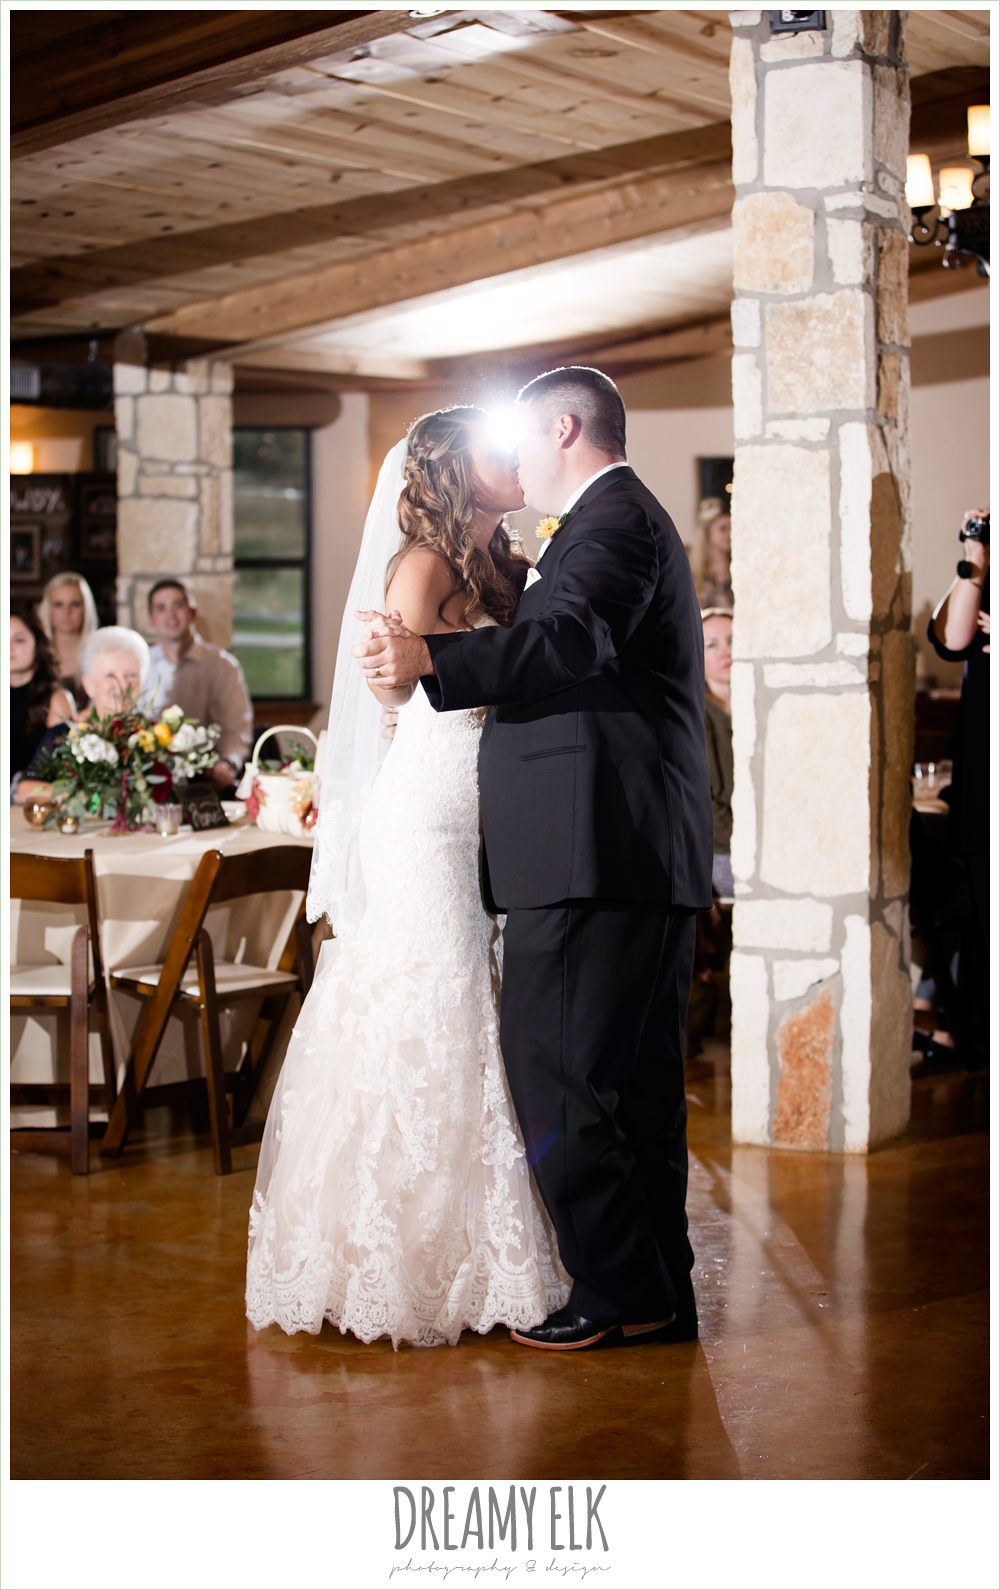 ventura's bridal fashions, sweetheart lace strapless fit and flare wedding dress, bride and groom first dance, indoor wedding reception, maroon and gold fall wedding photo, la hacienda, dripping springs, texas {dreamy elk photography and design}